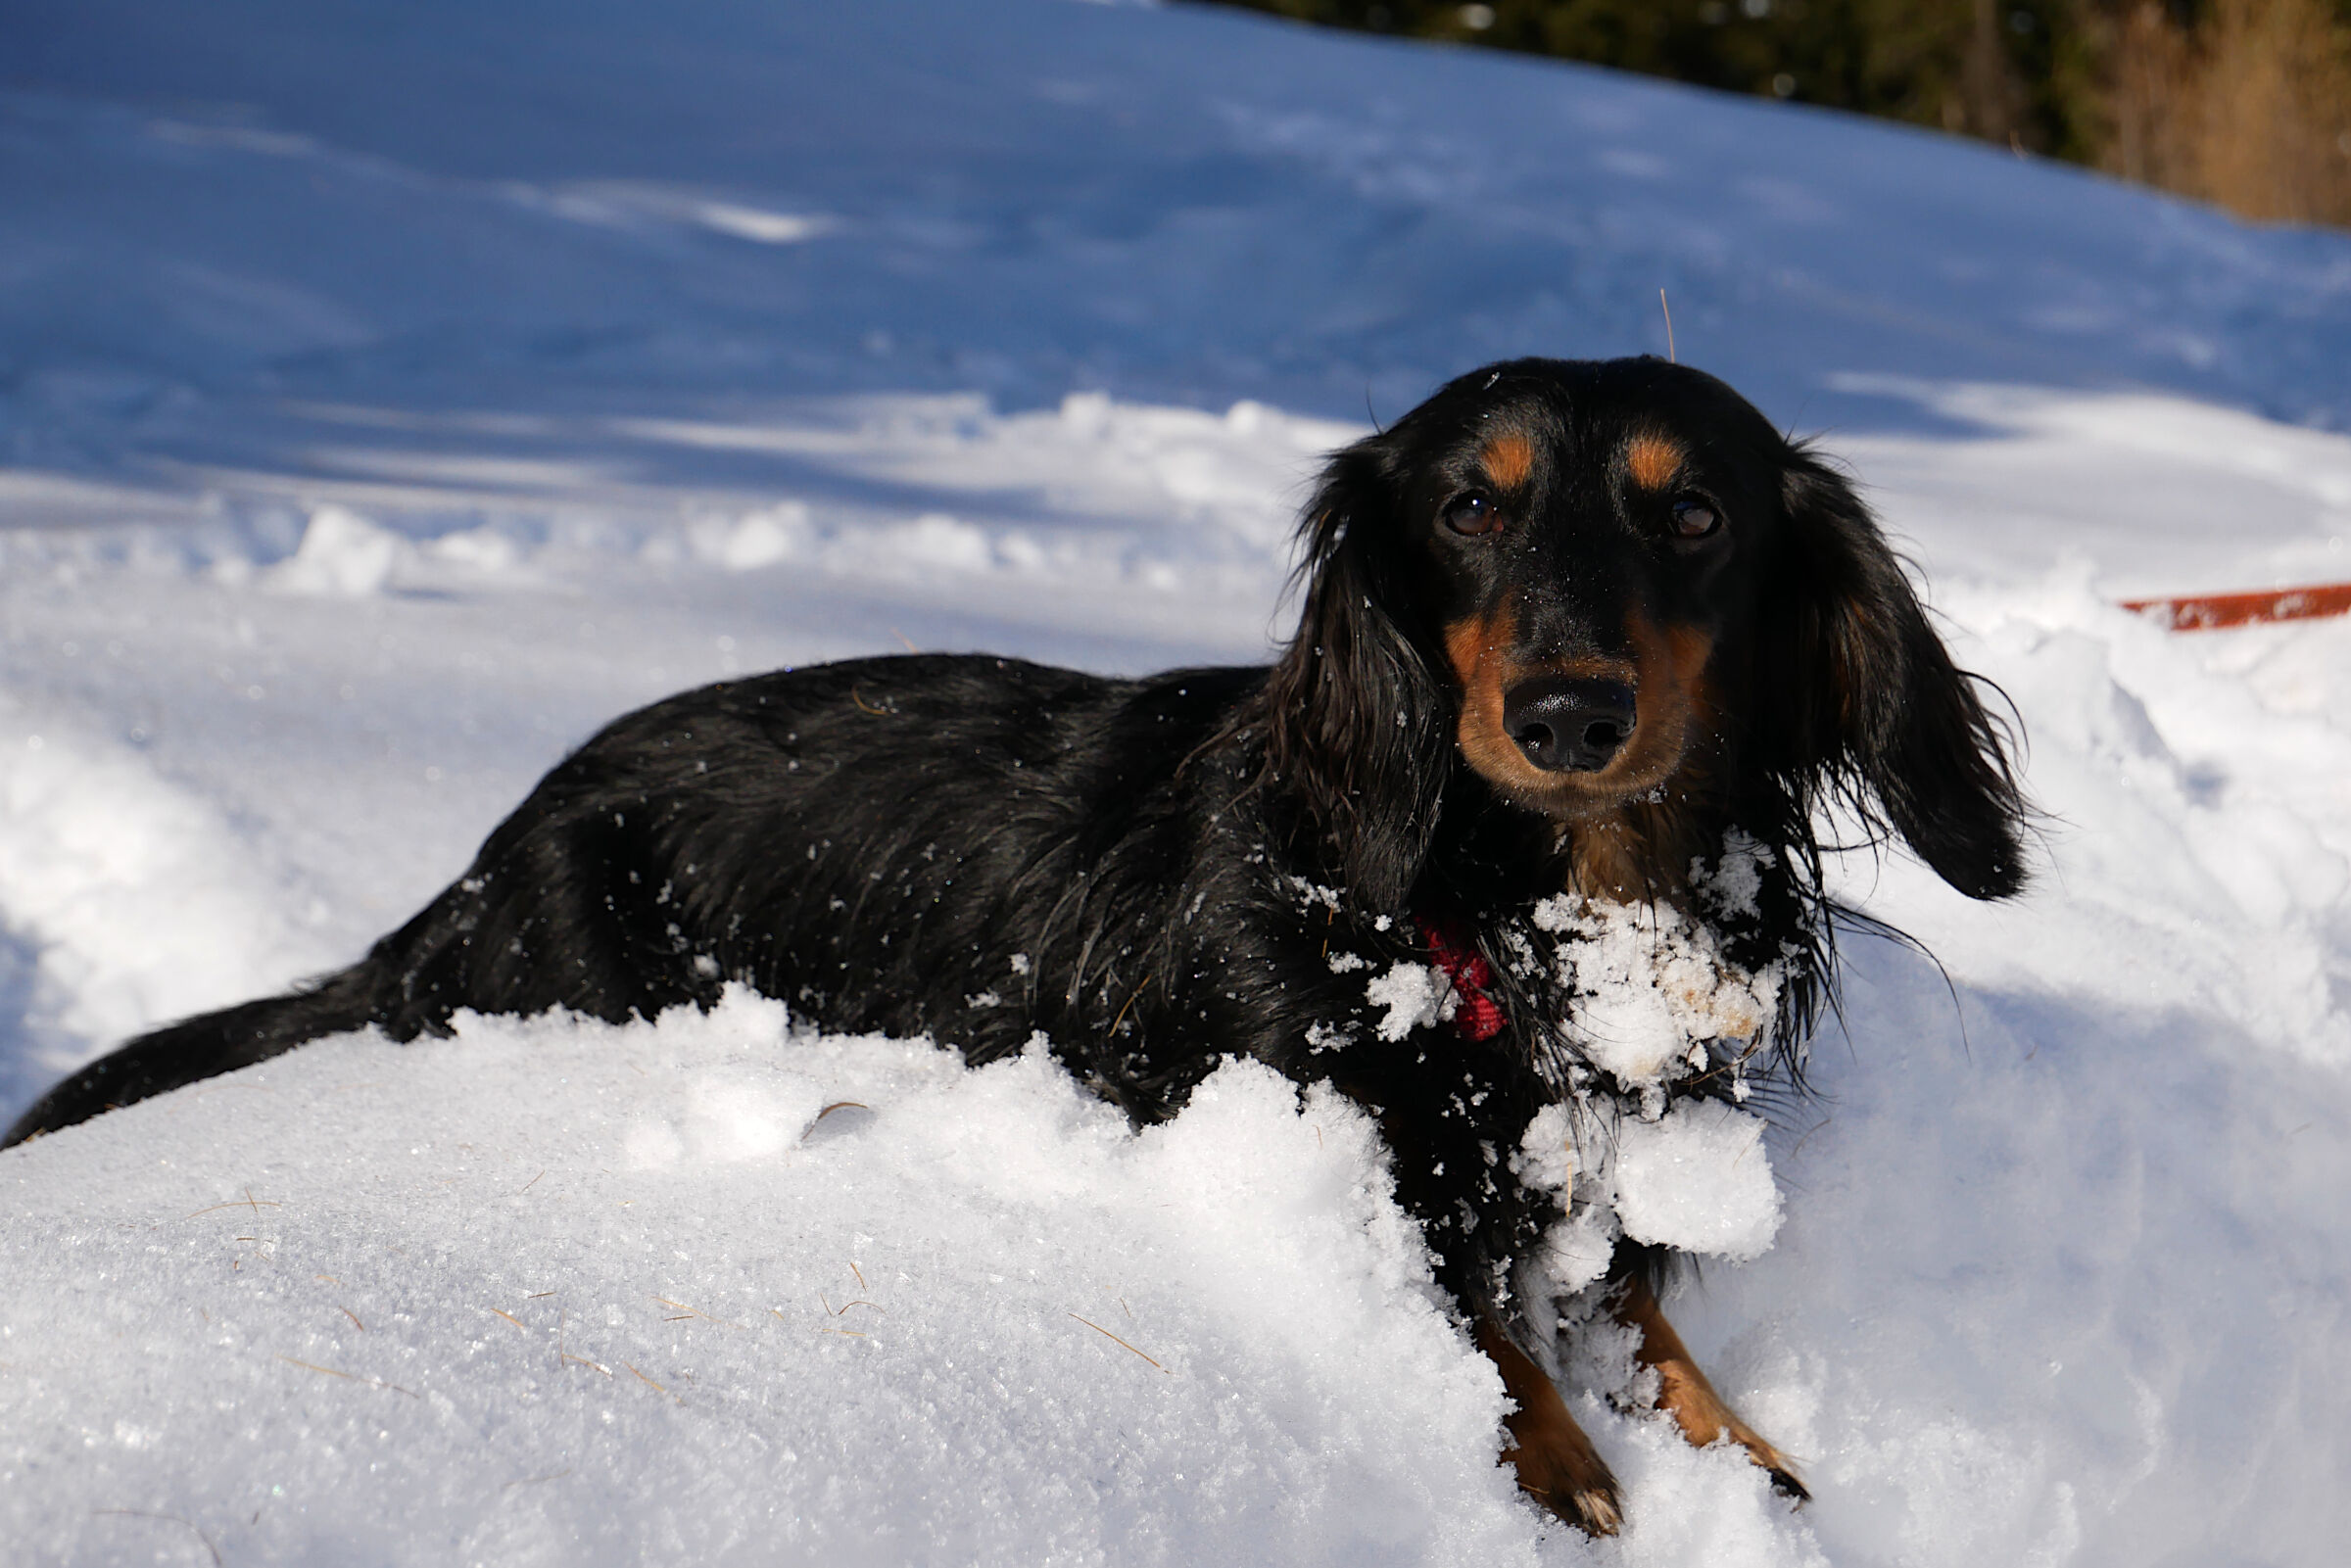 Relaxing in the snow...